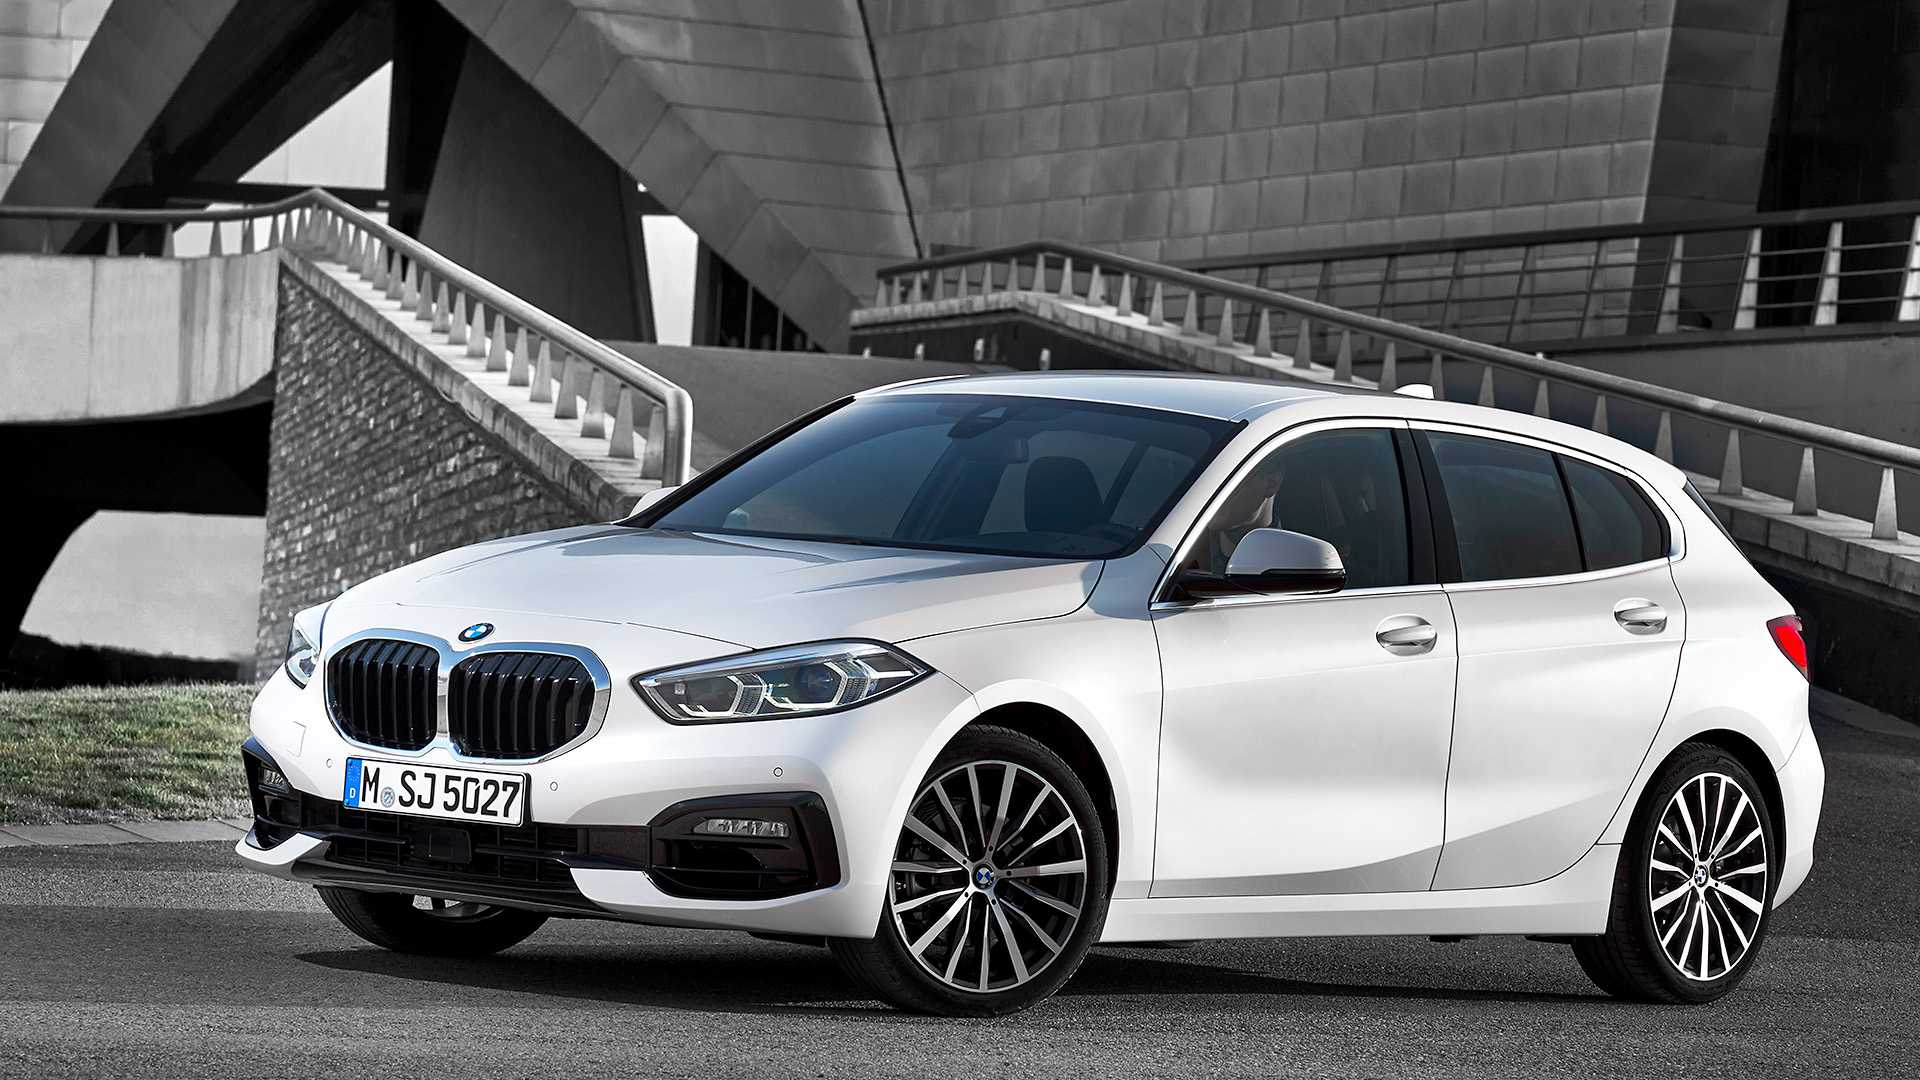 29 New Bmw 1Er 2020 Price And Review